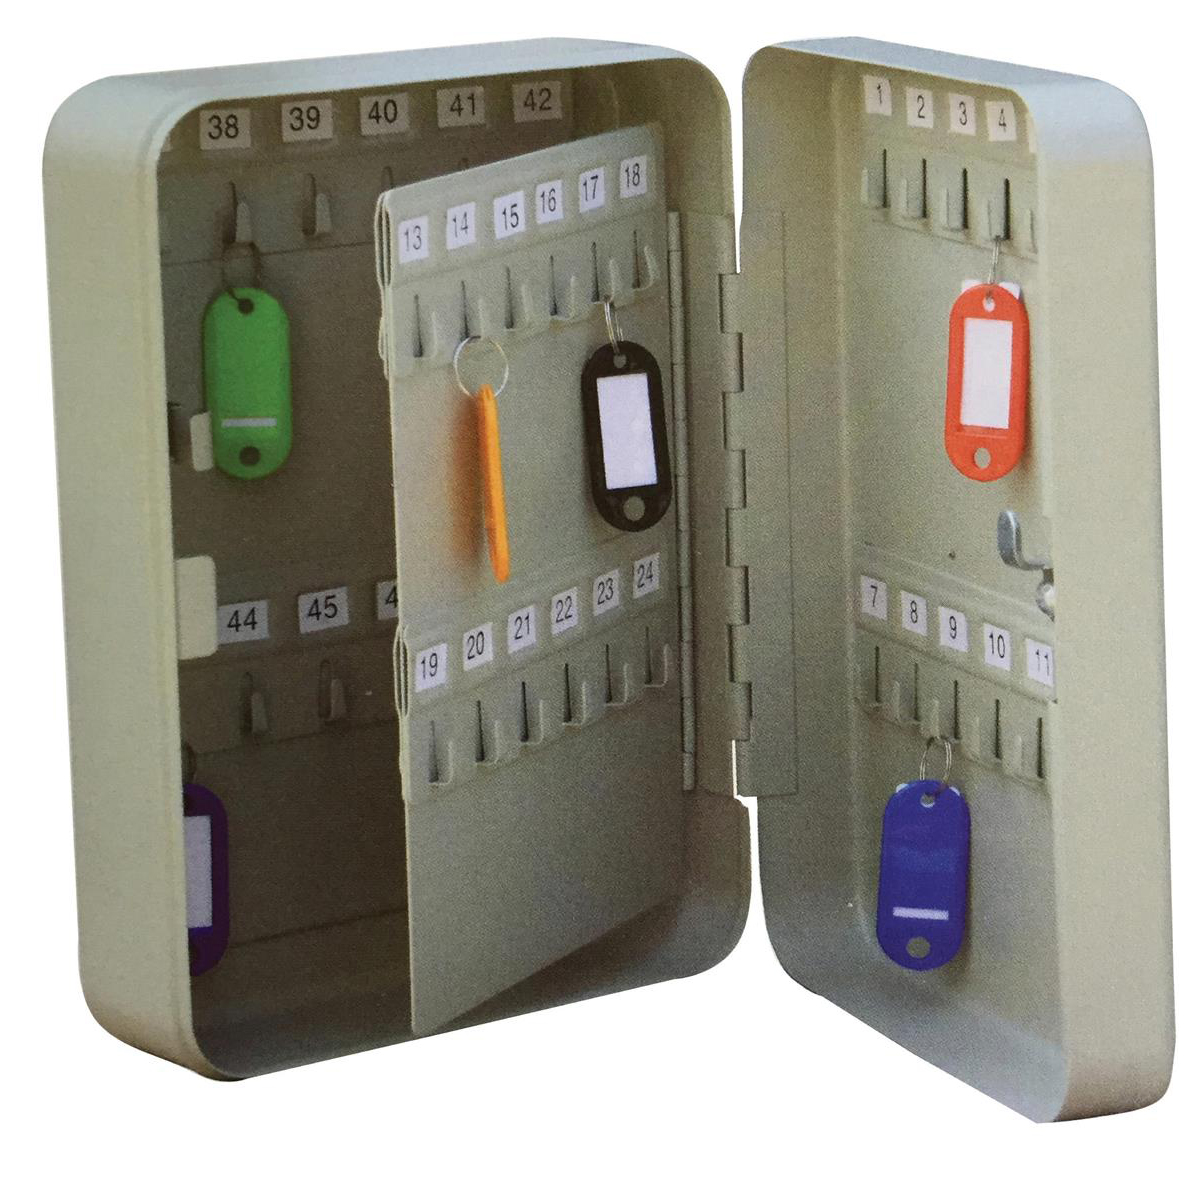 Key Cabinets 5 Star Facilities Key Cabinet Steel Lockable with Wall Fixings Holds 48 Keys W180xD80xH250mm